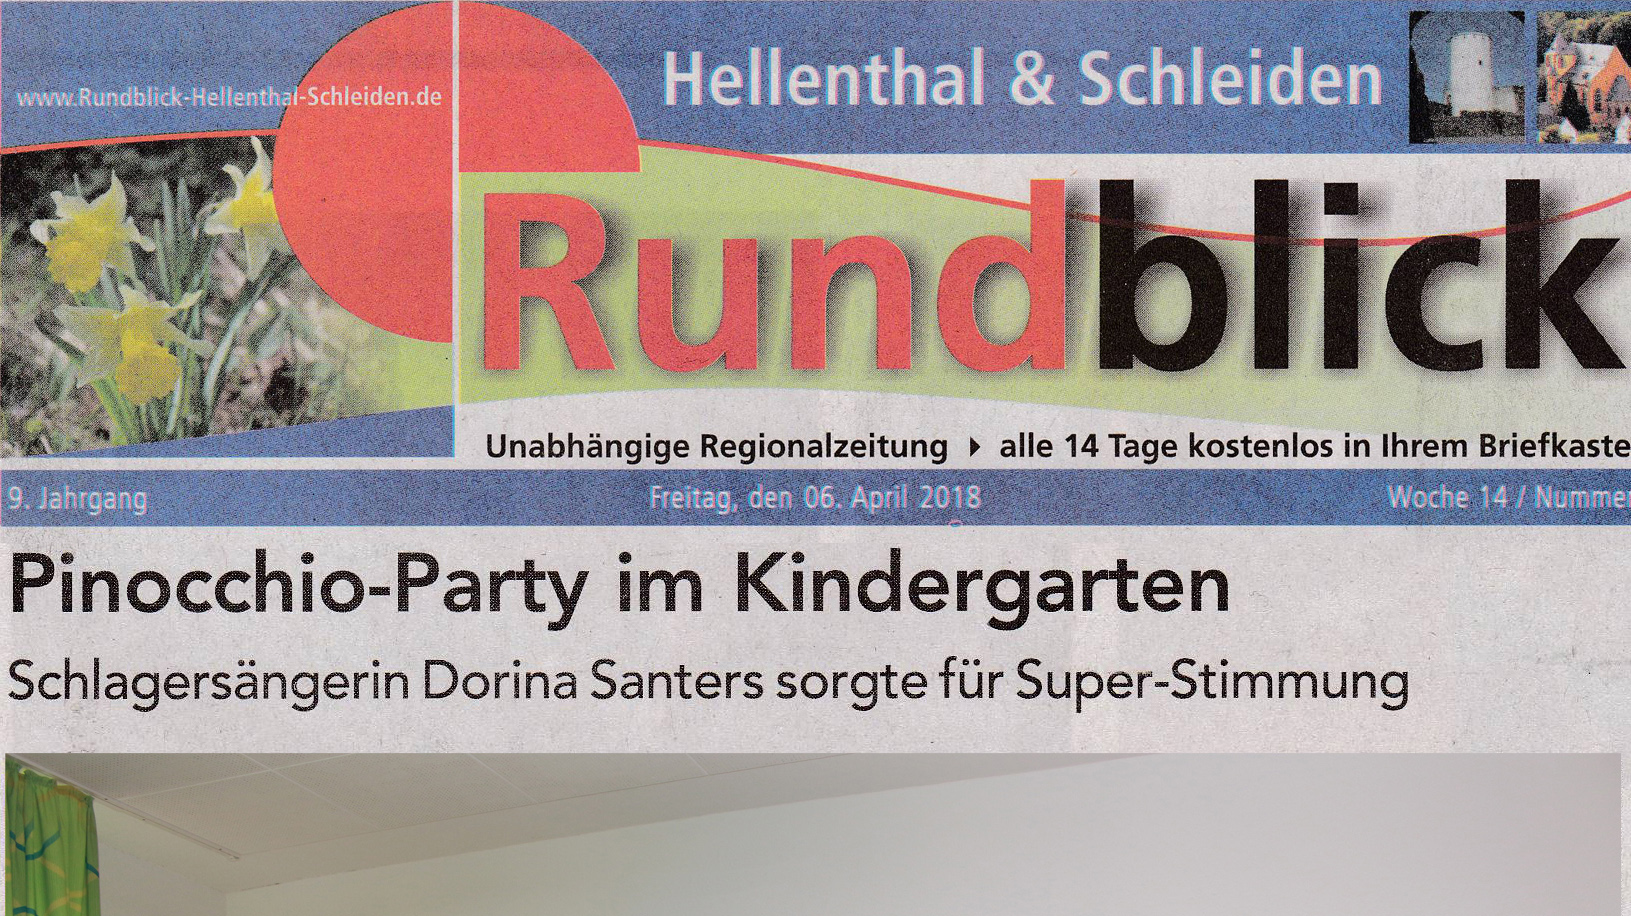 Rundblick Pinocchio-Party im Kindergarten